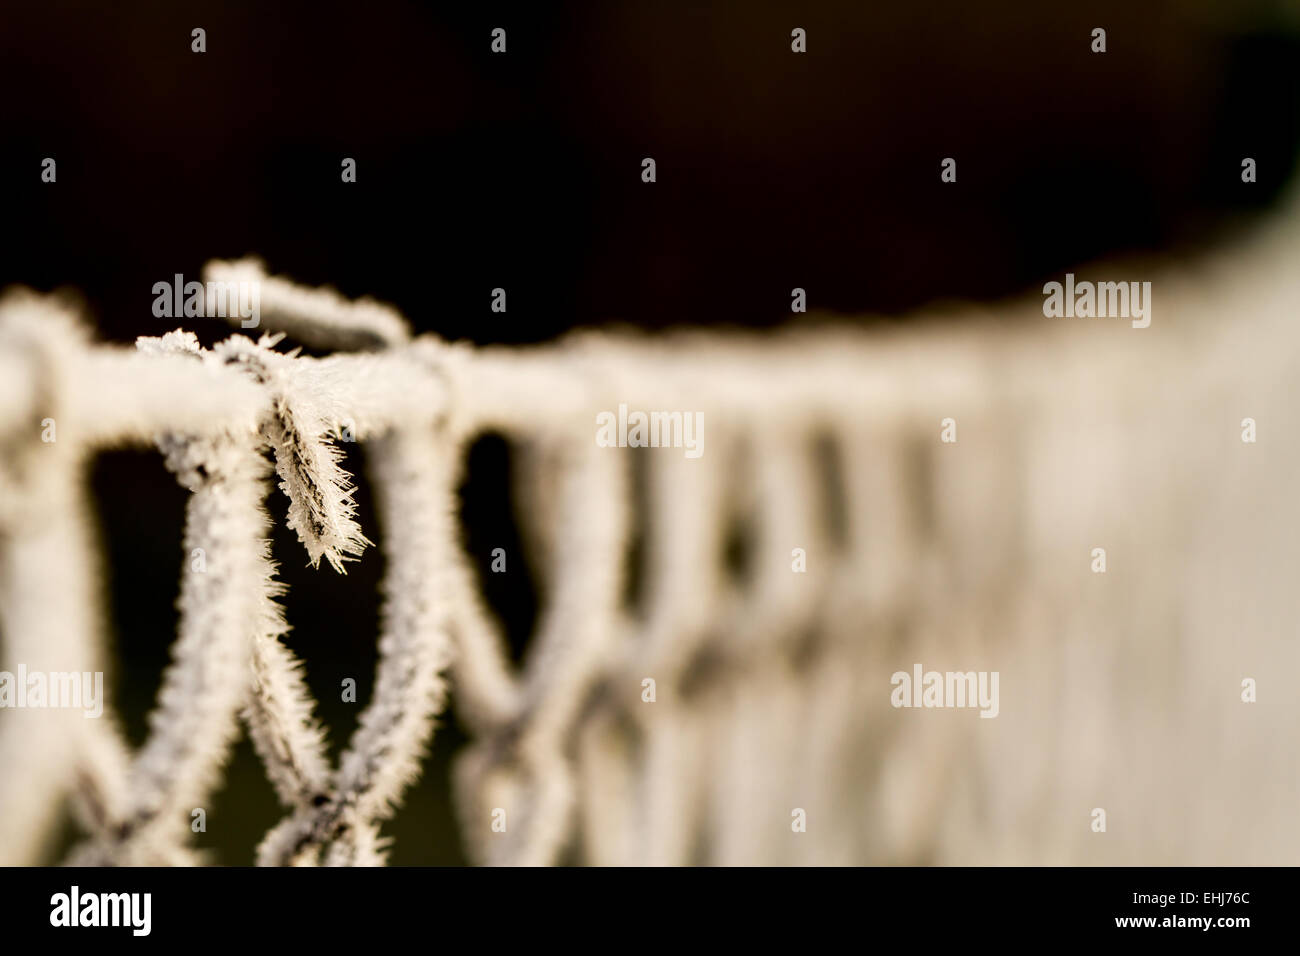 wire fence texture with hoarfrost overlay - Stock Image